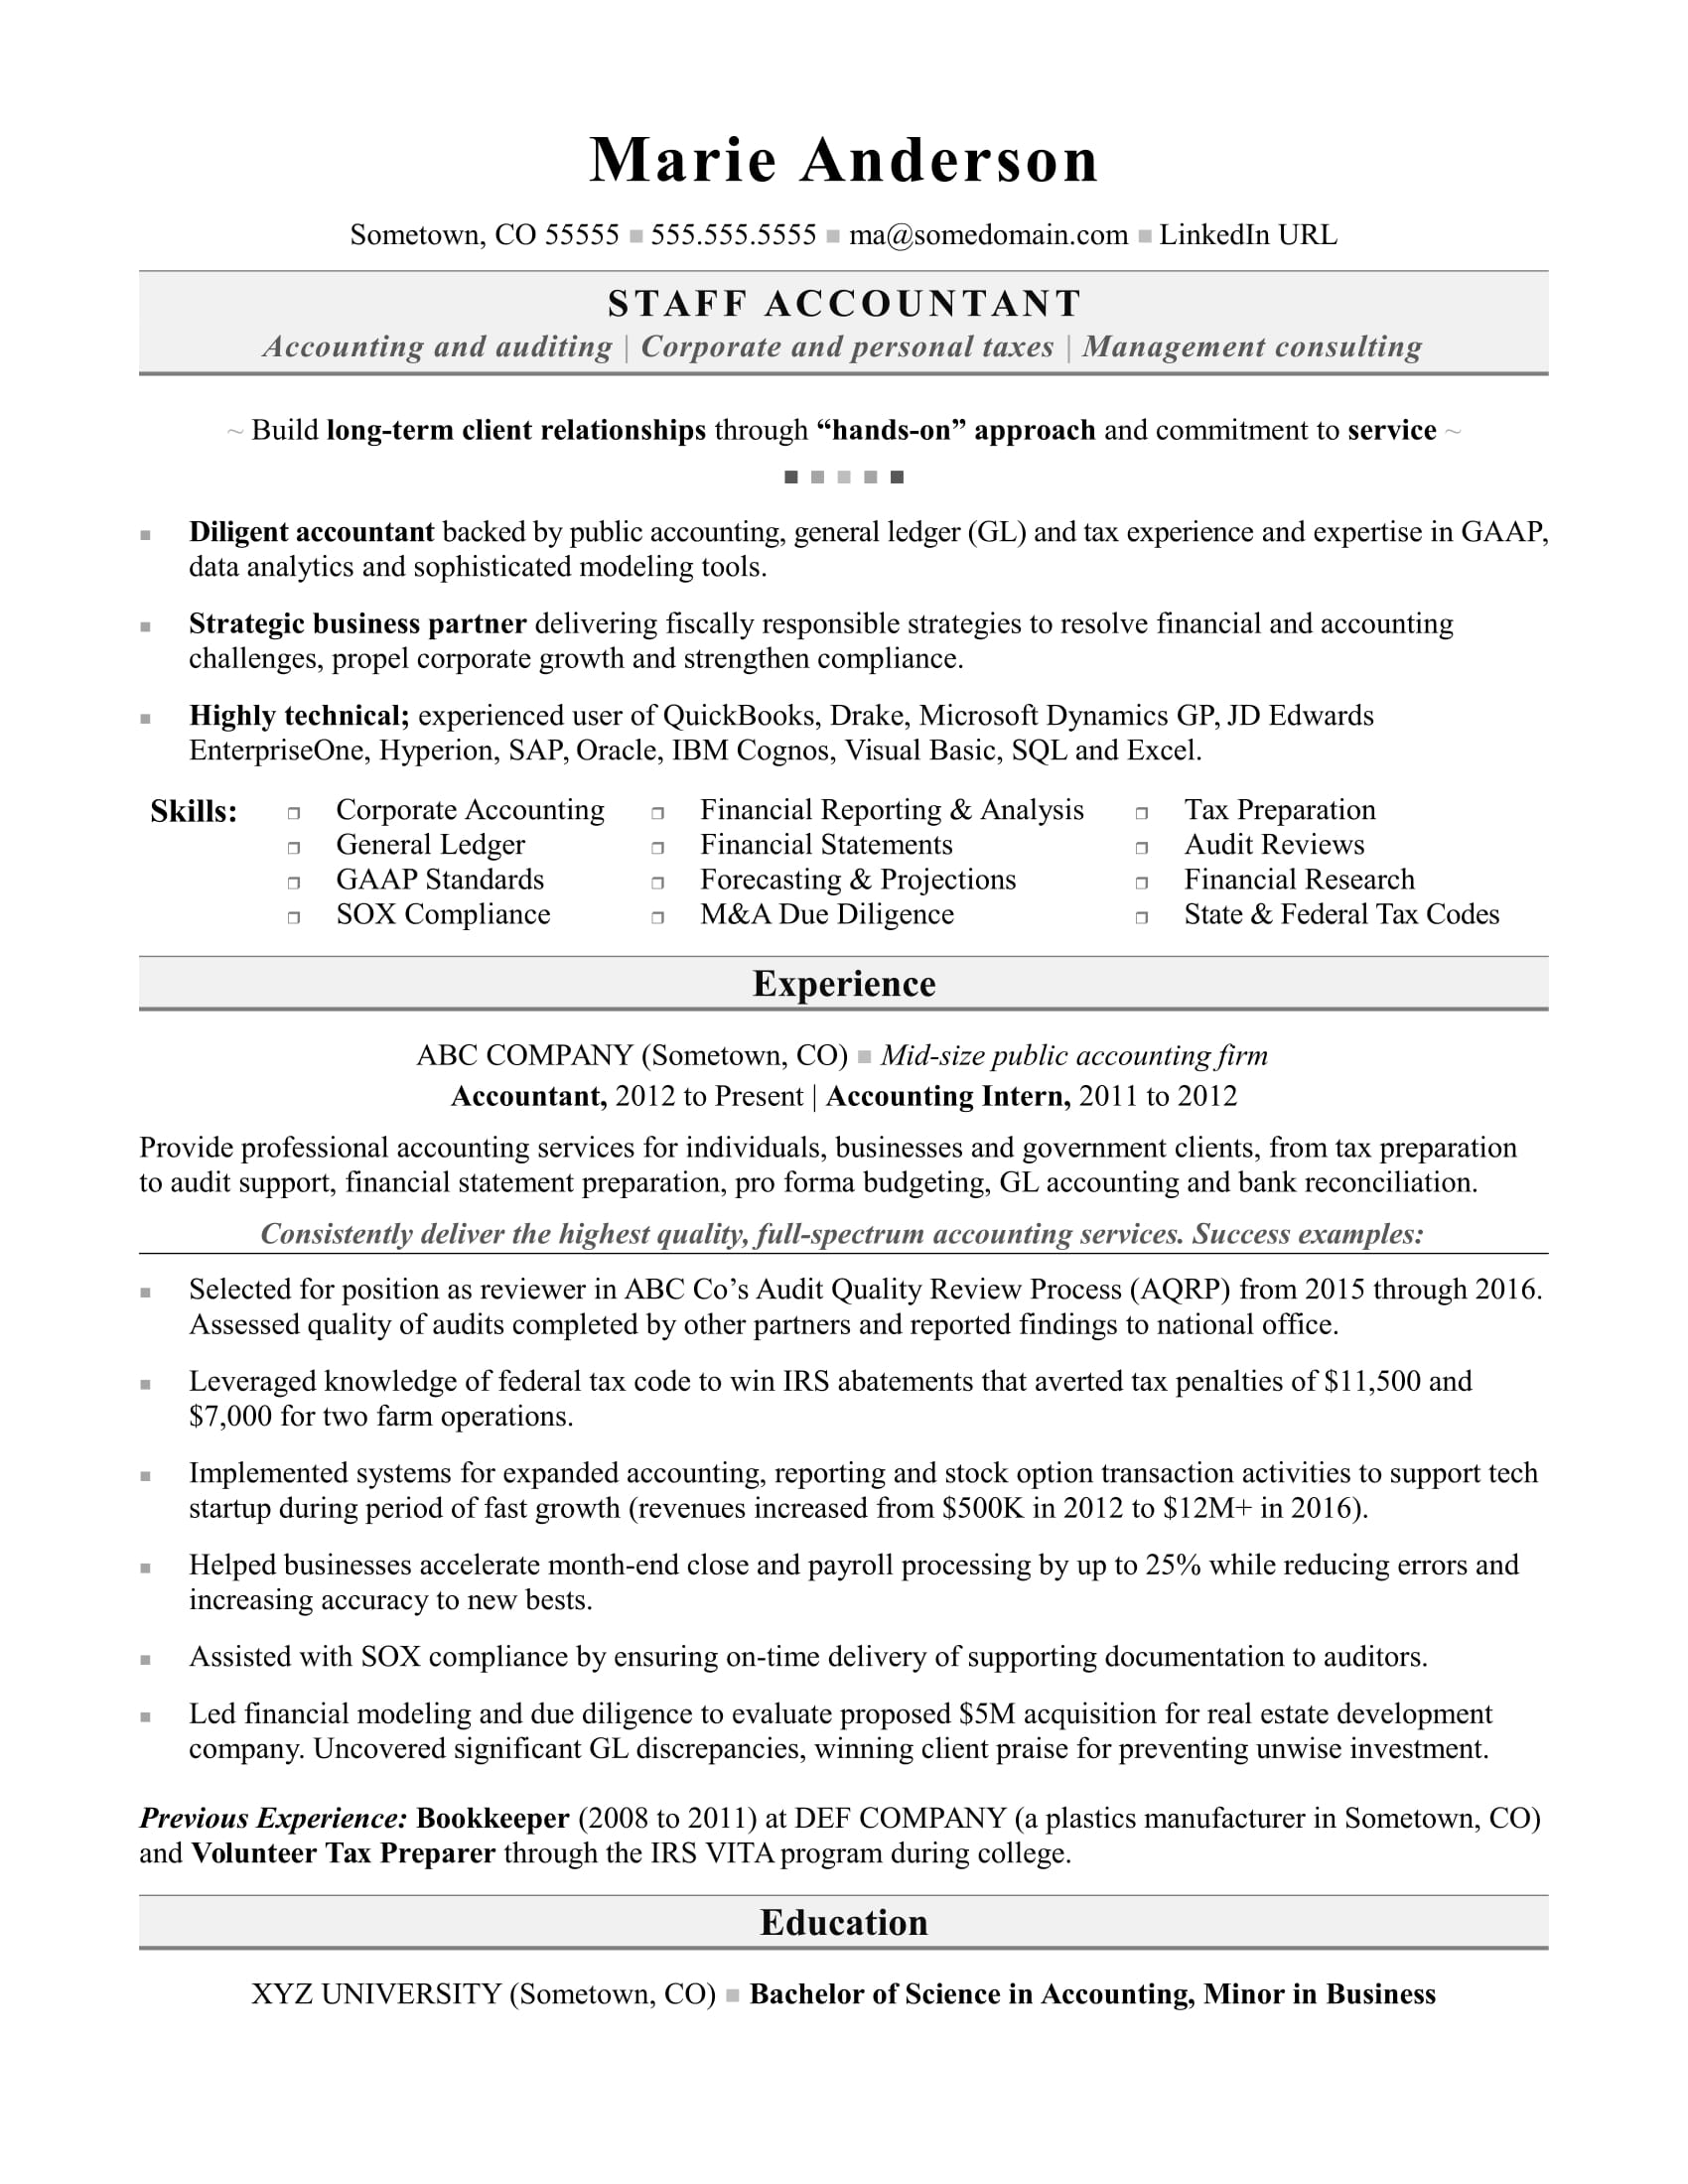 accounting resume sample monster property accountant for new graduate registered nurse Resume Property Accountant Resume Sample